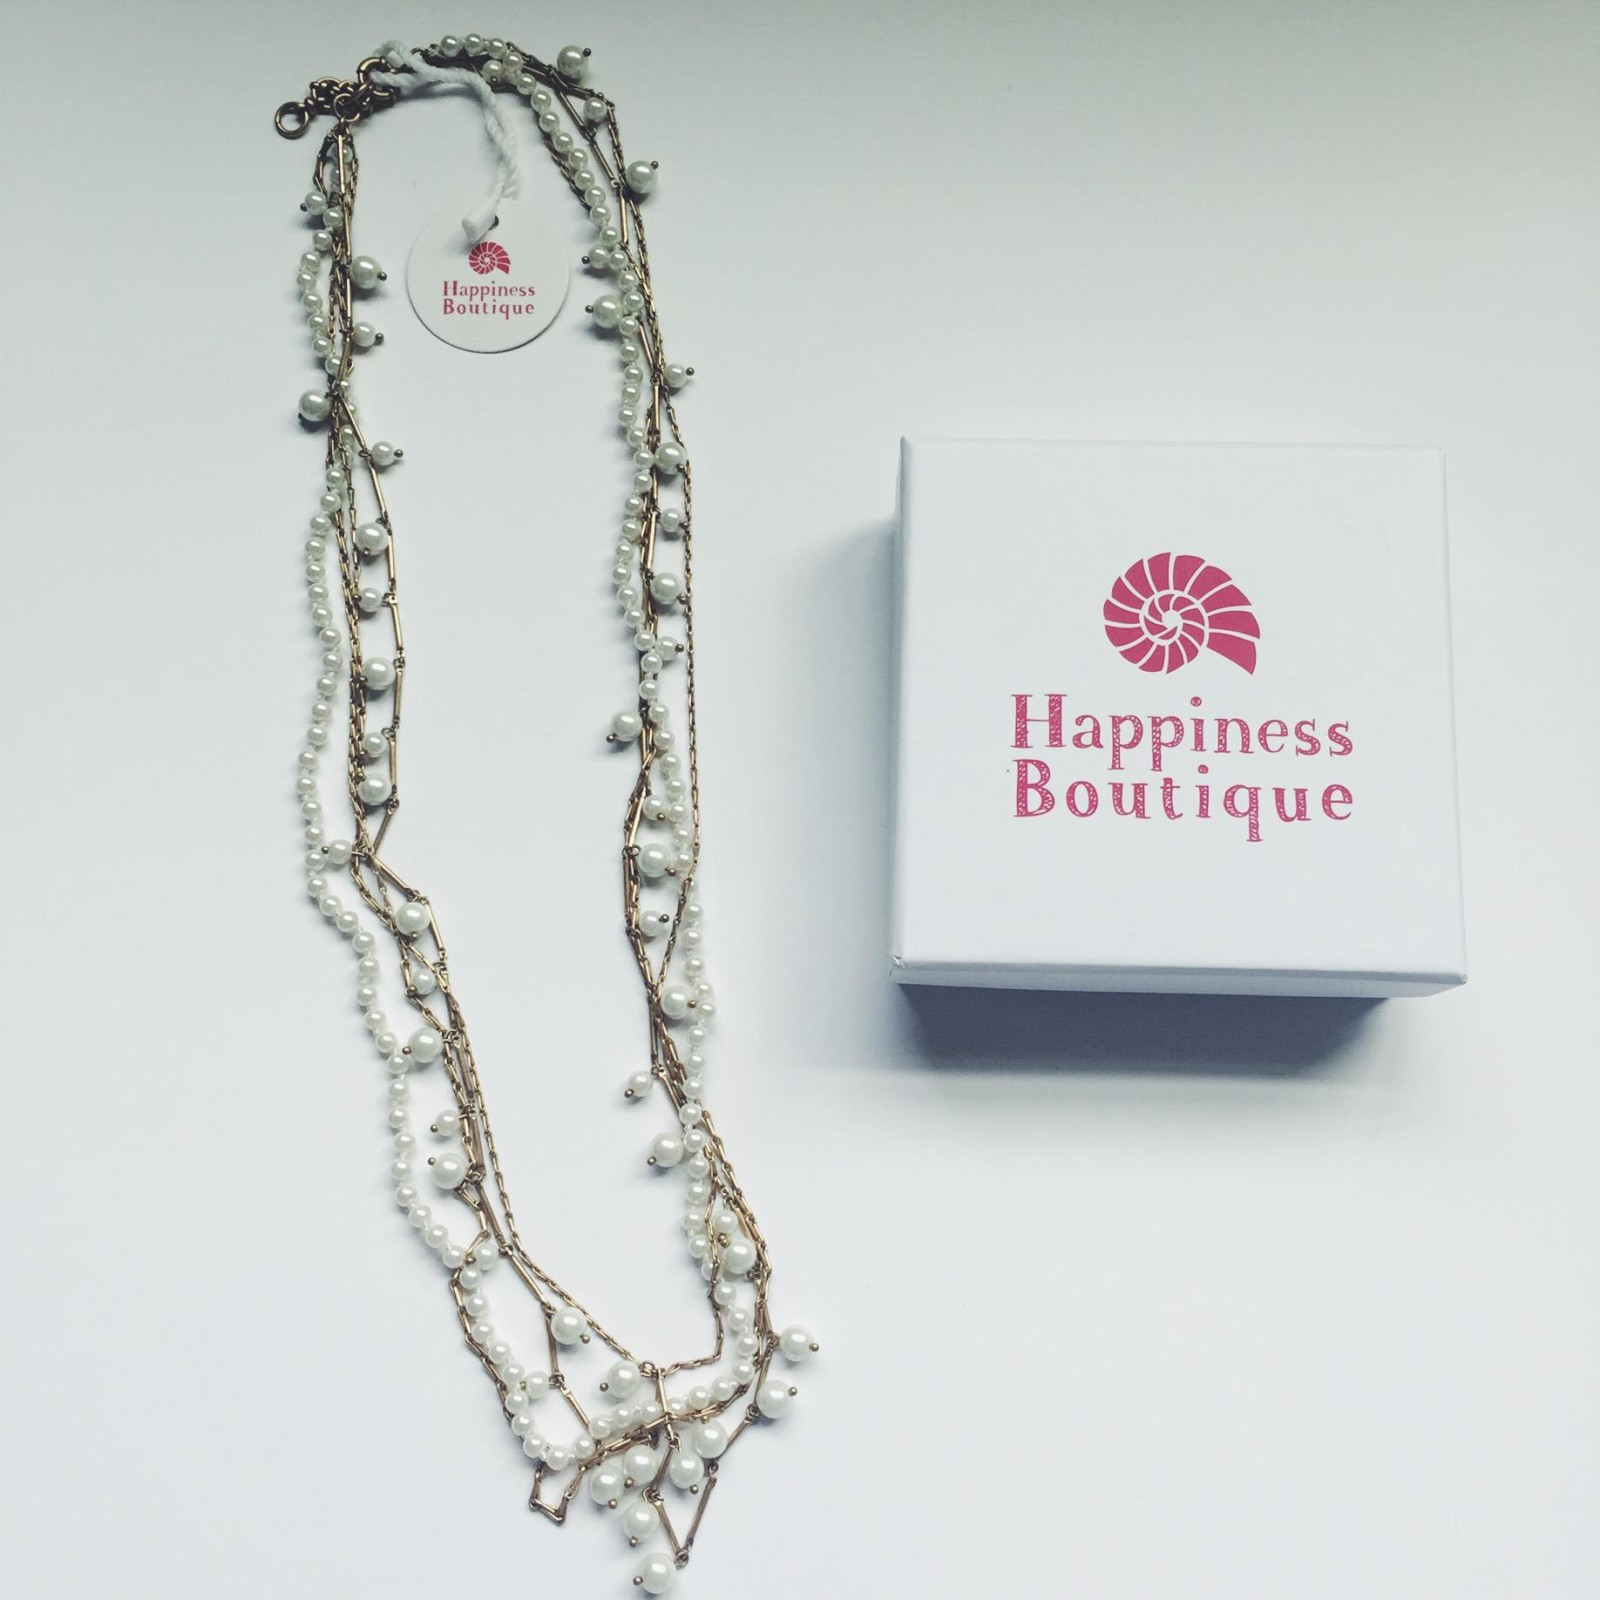 happiness boutique pearl necklace